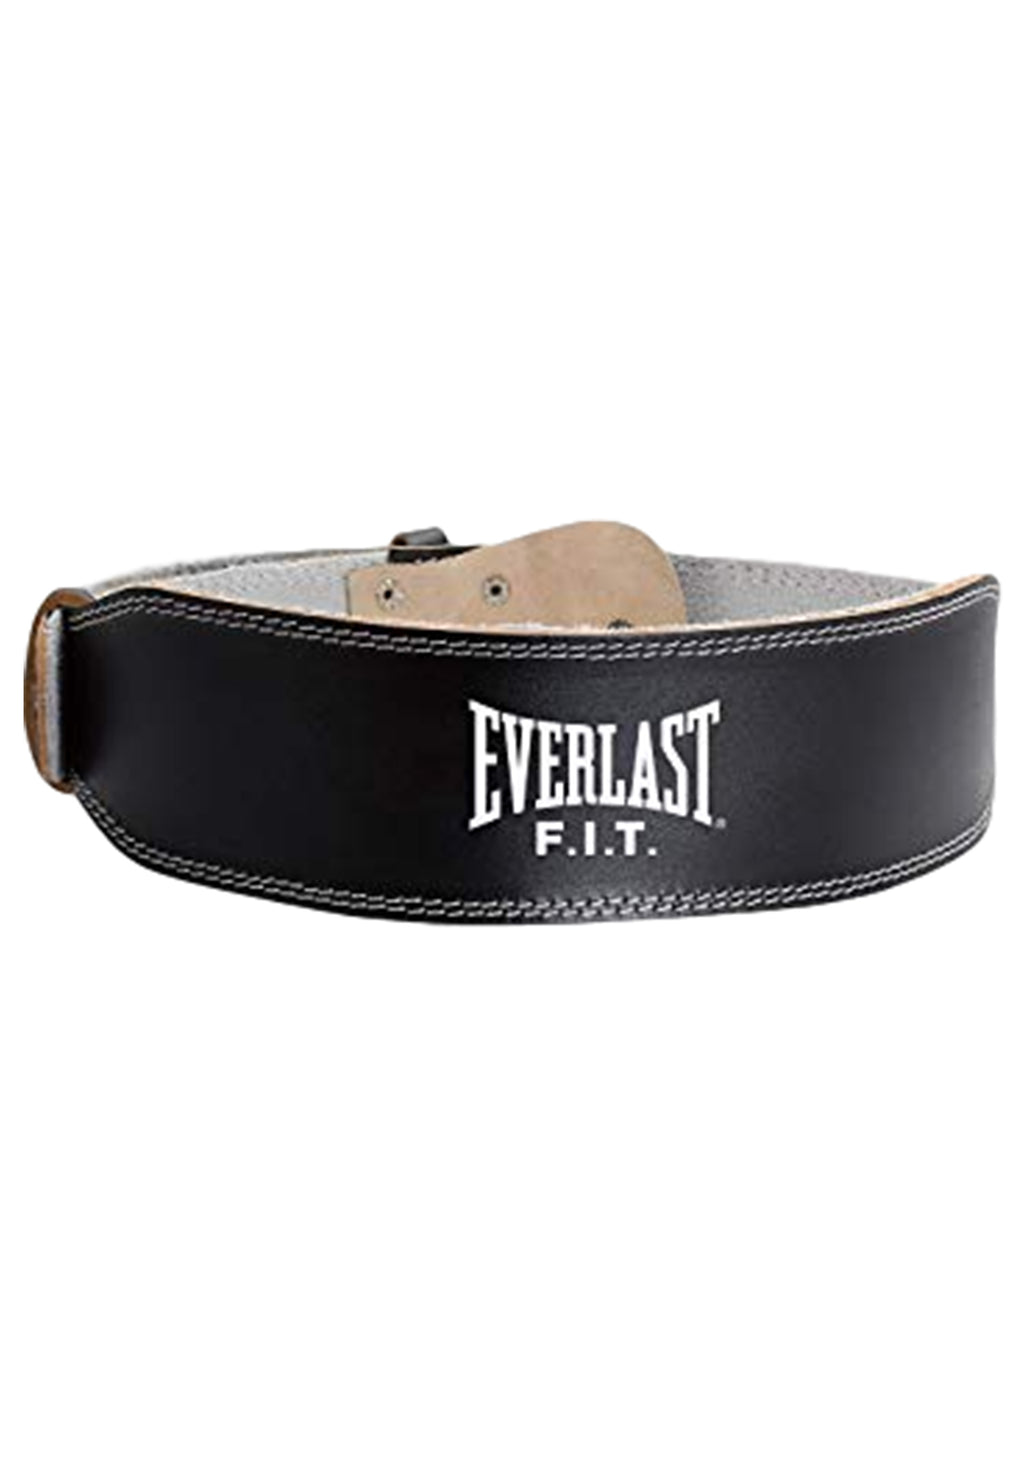 EVERLAST LEATHER WEIGHT BELT